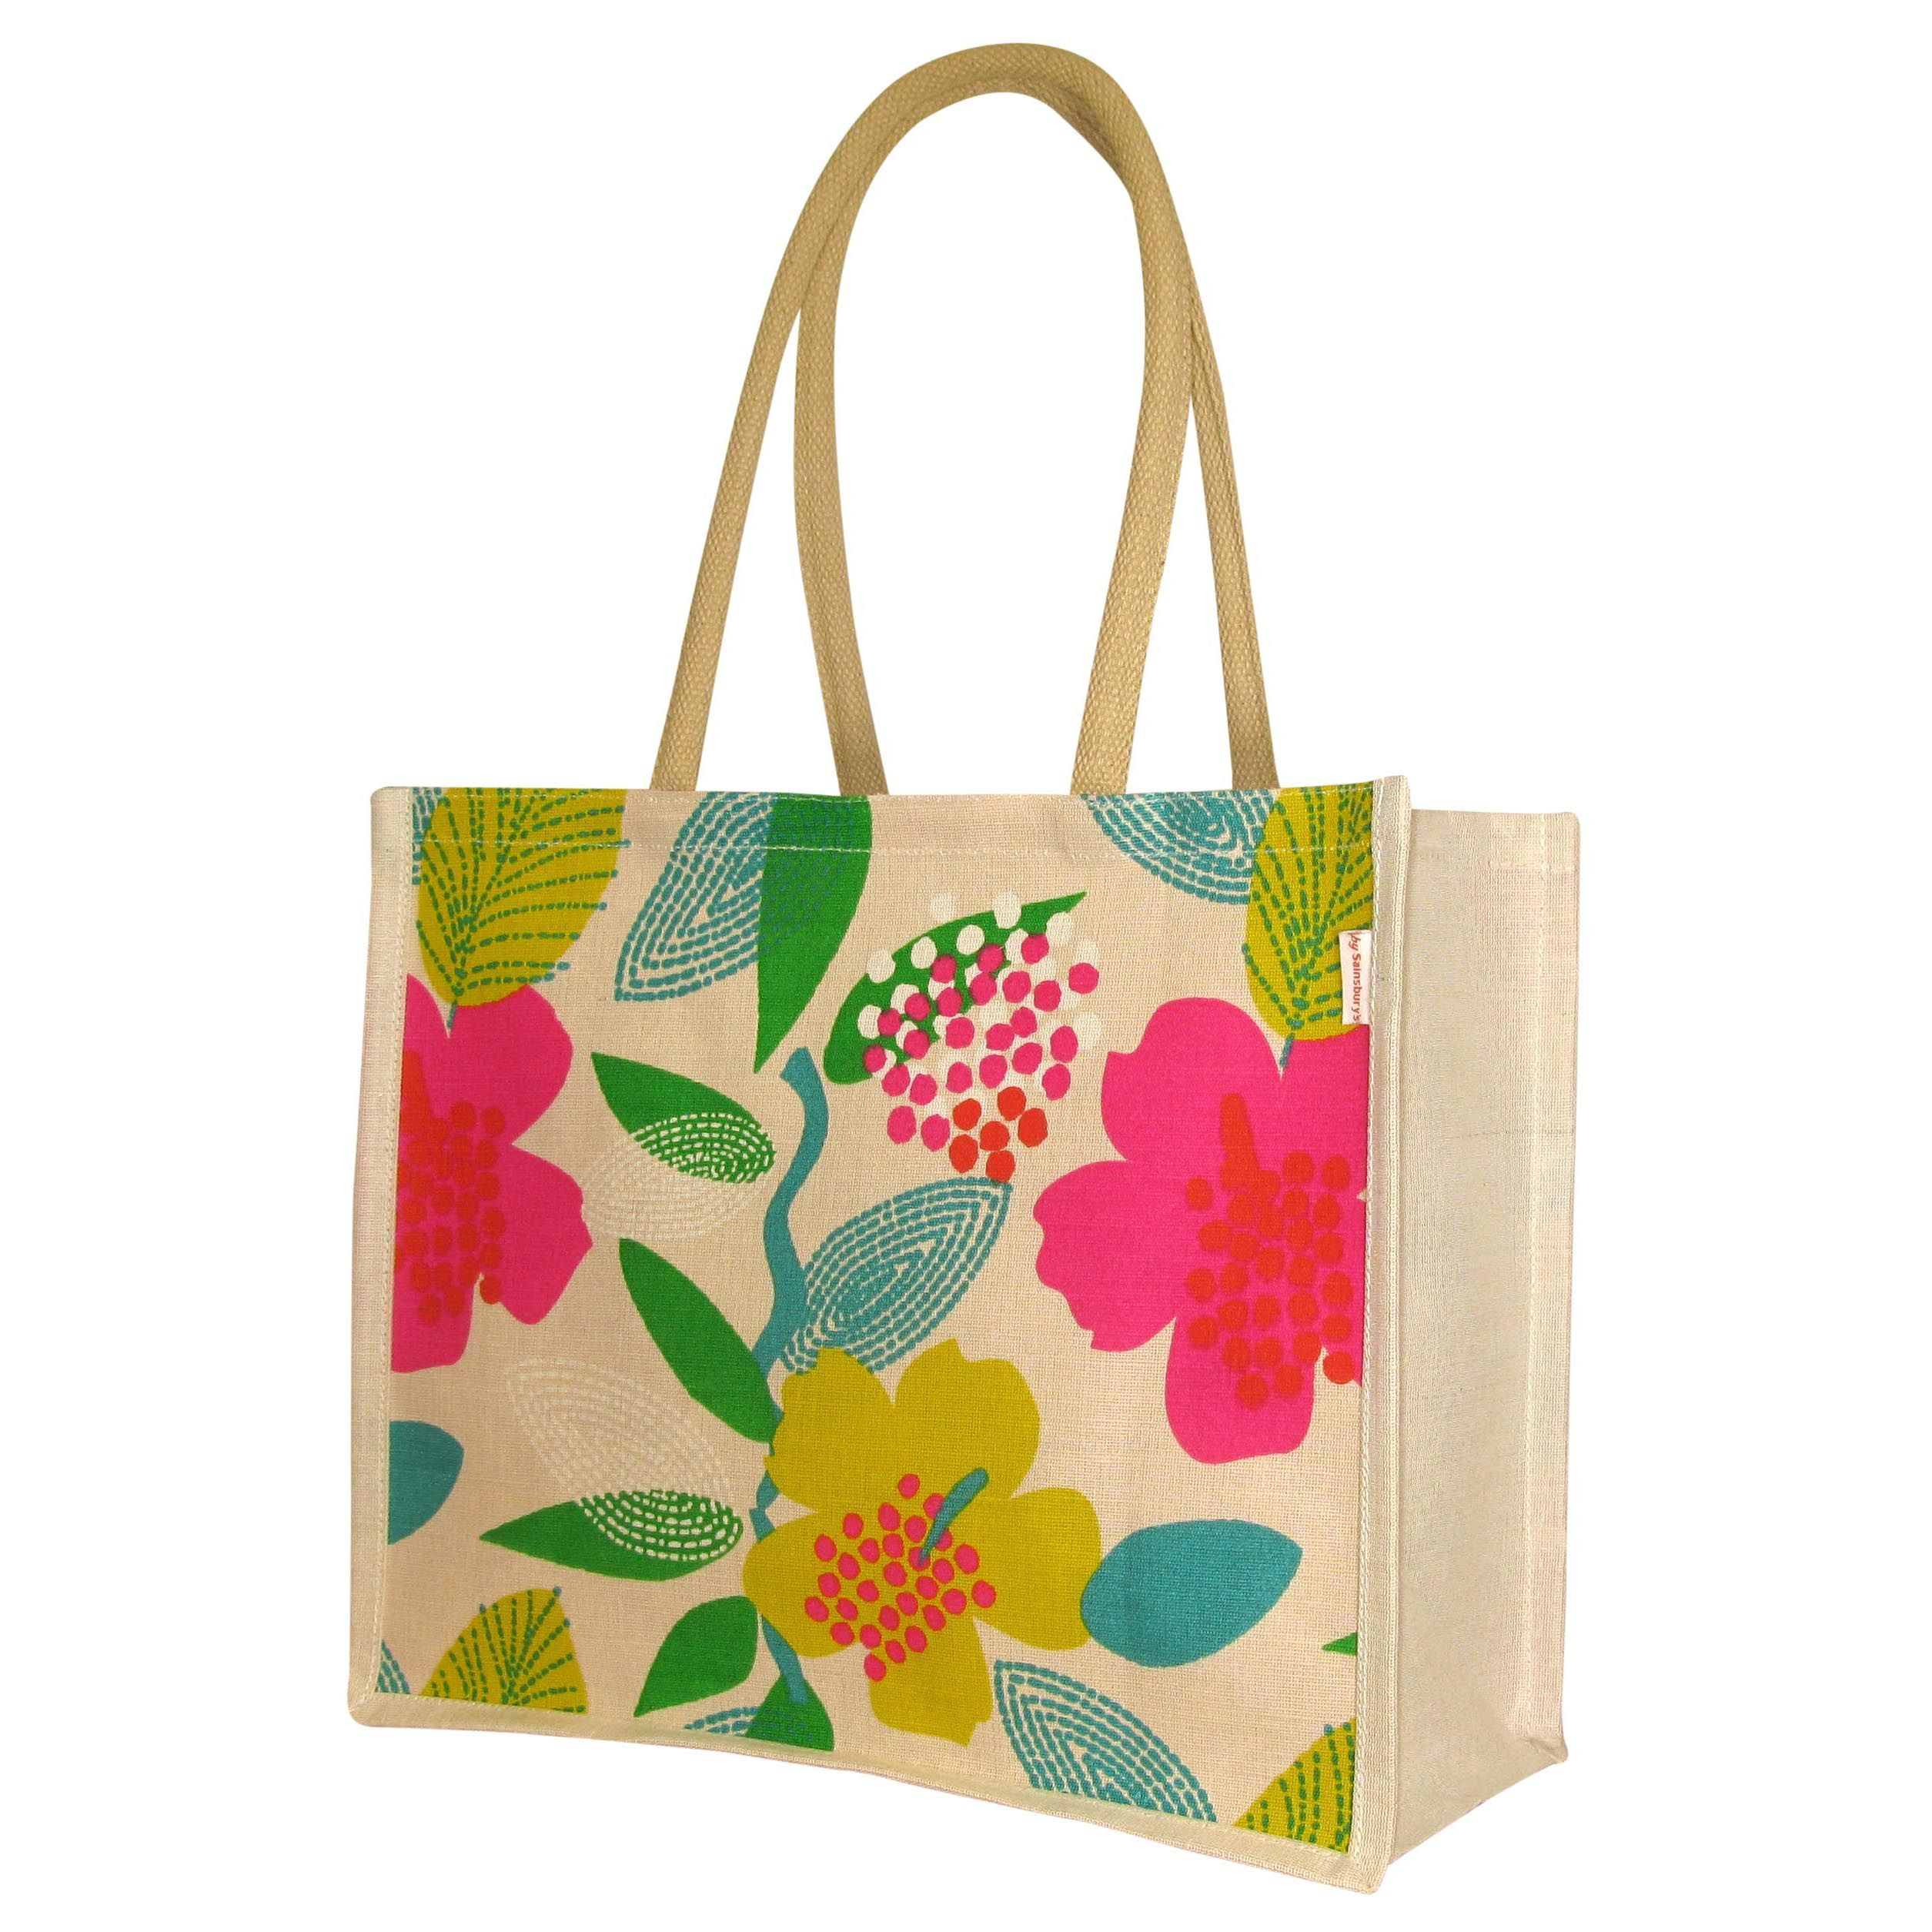 Latest Bags A Beautiful Bag From Woodland Trust Sainsbury S